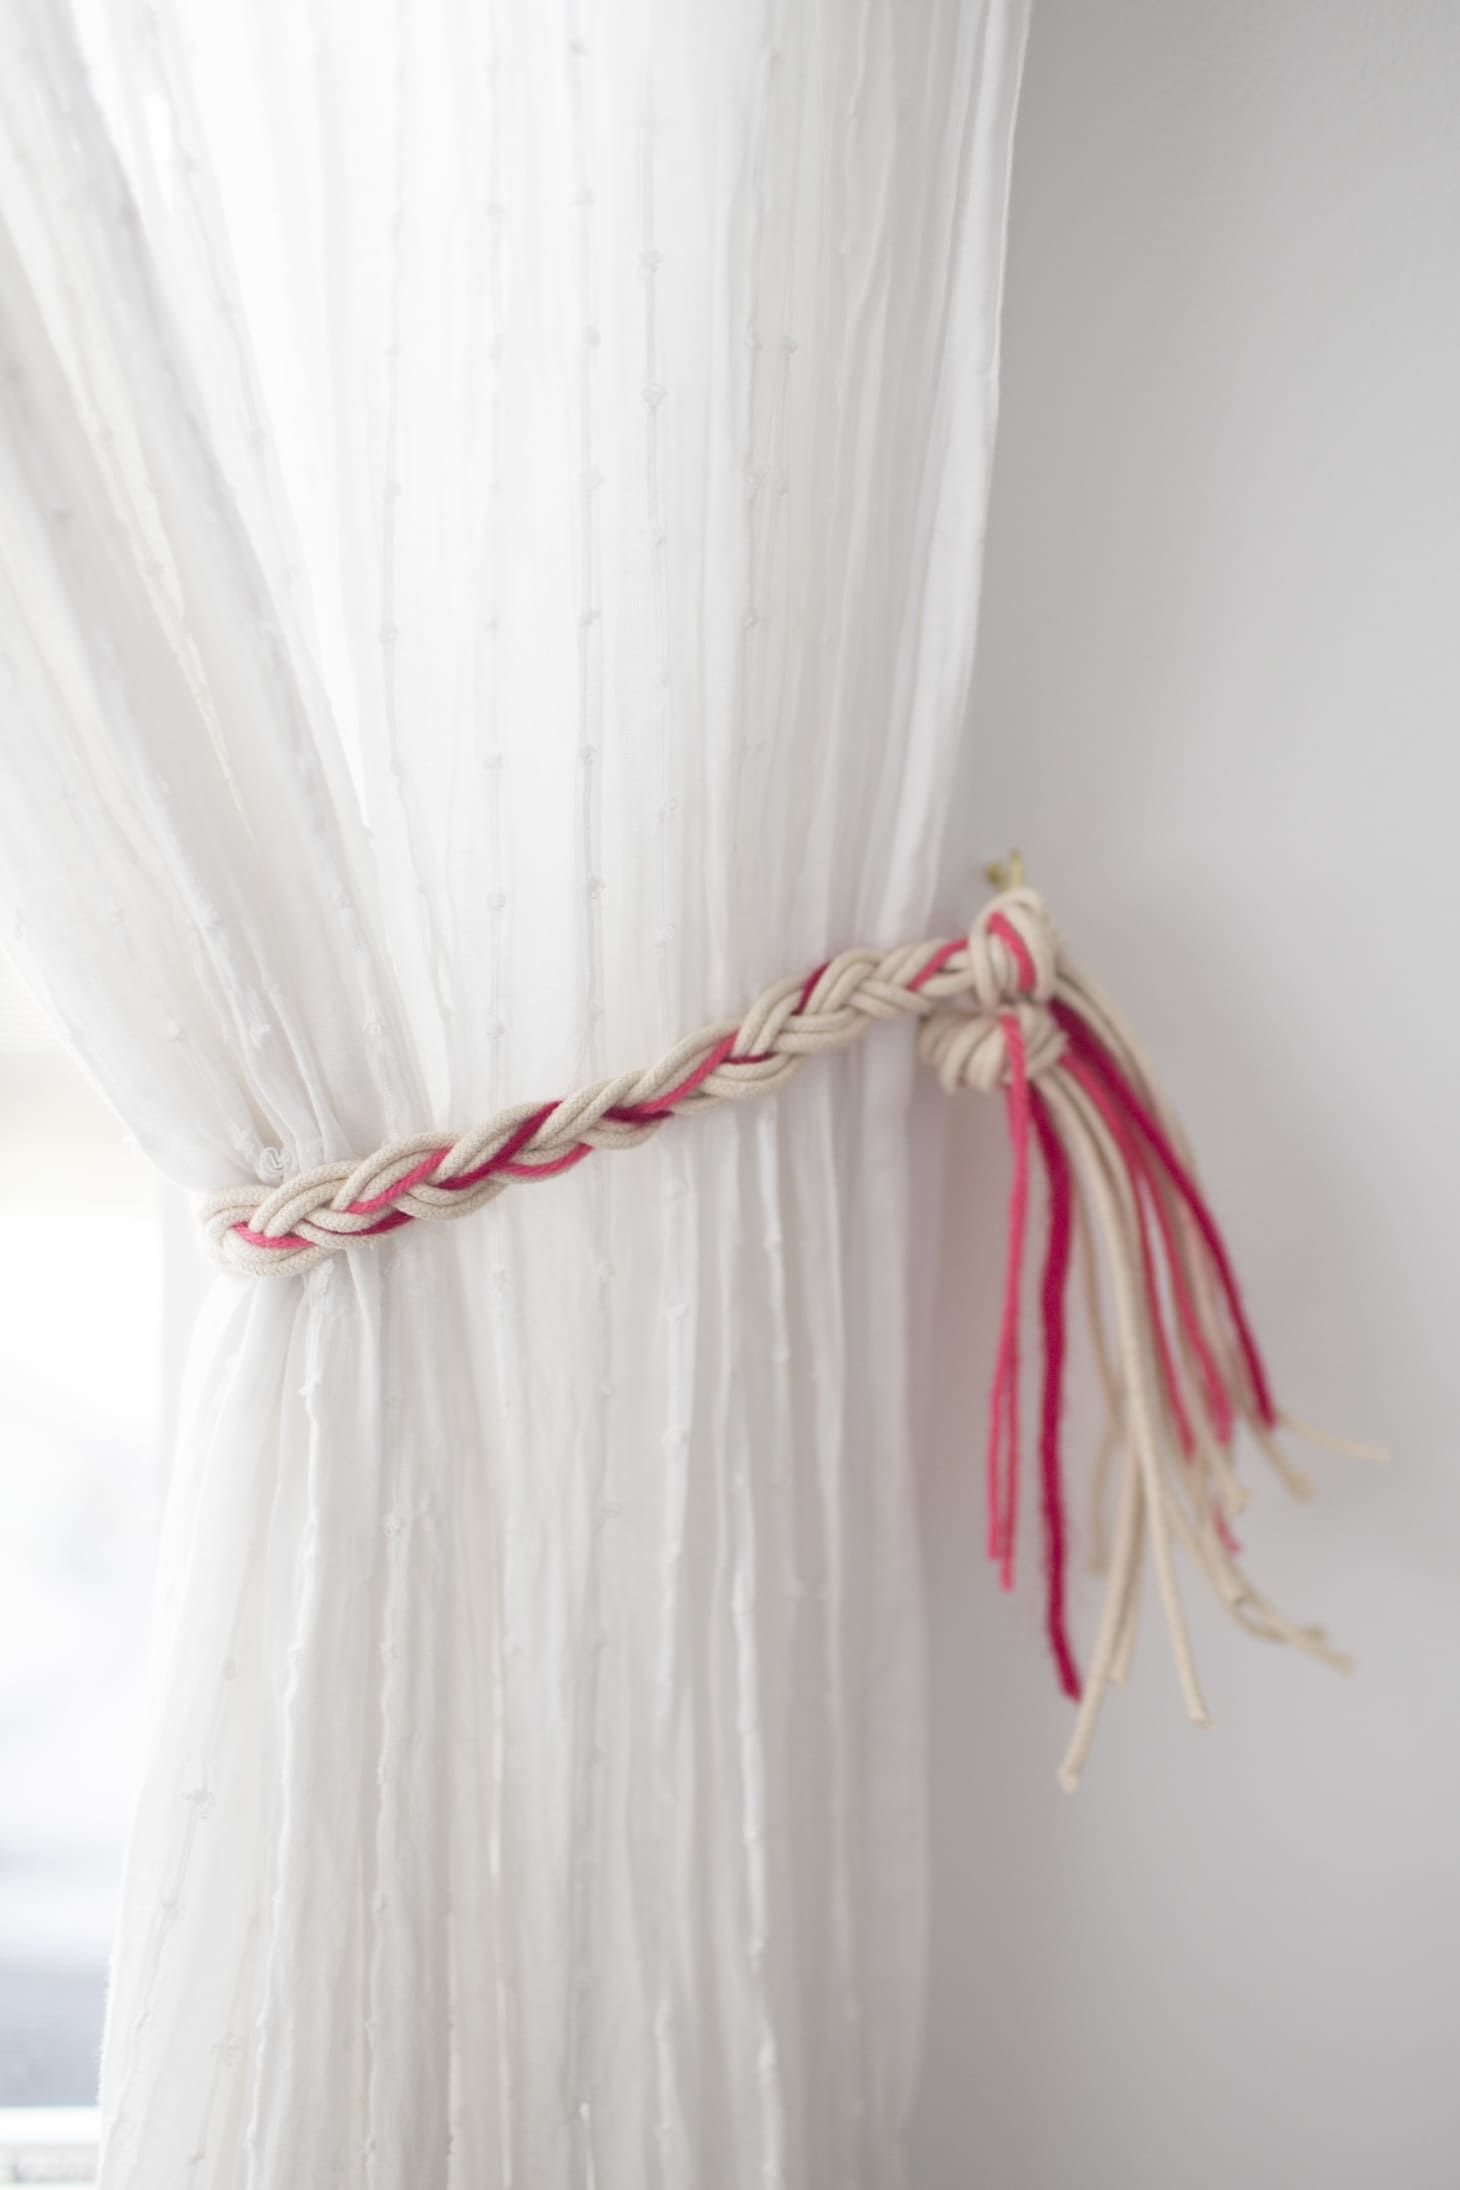 These Curtain Tie Backs Let More Natural Light Into Your